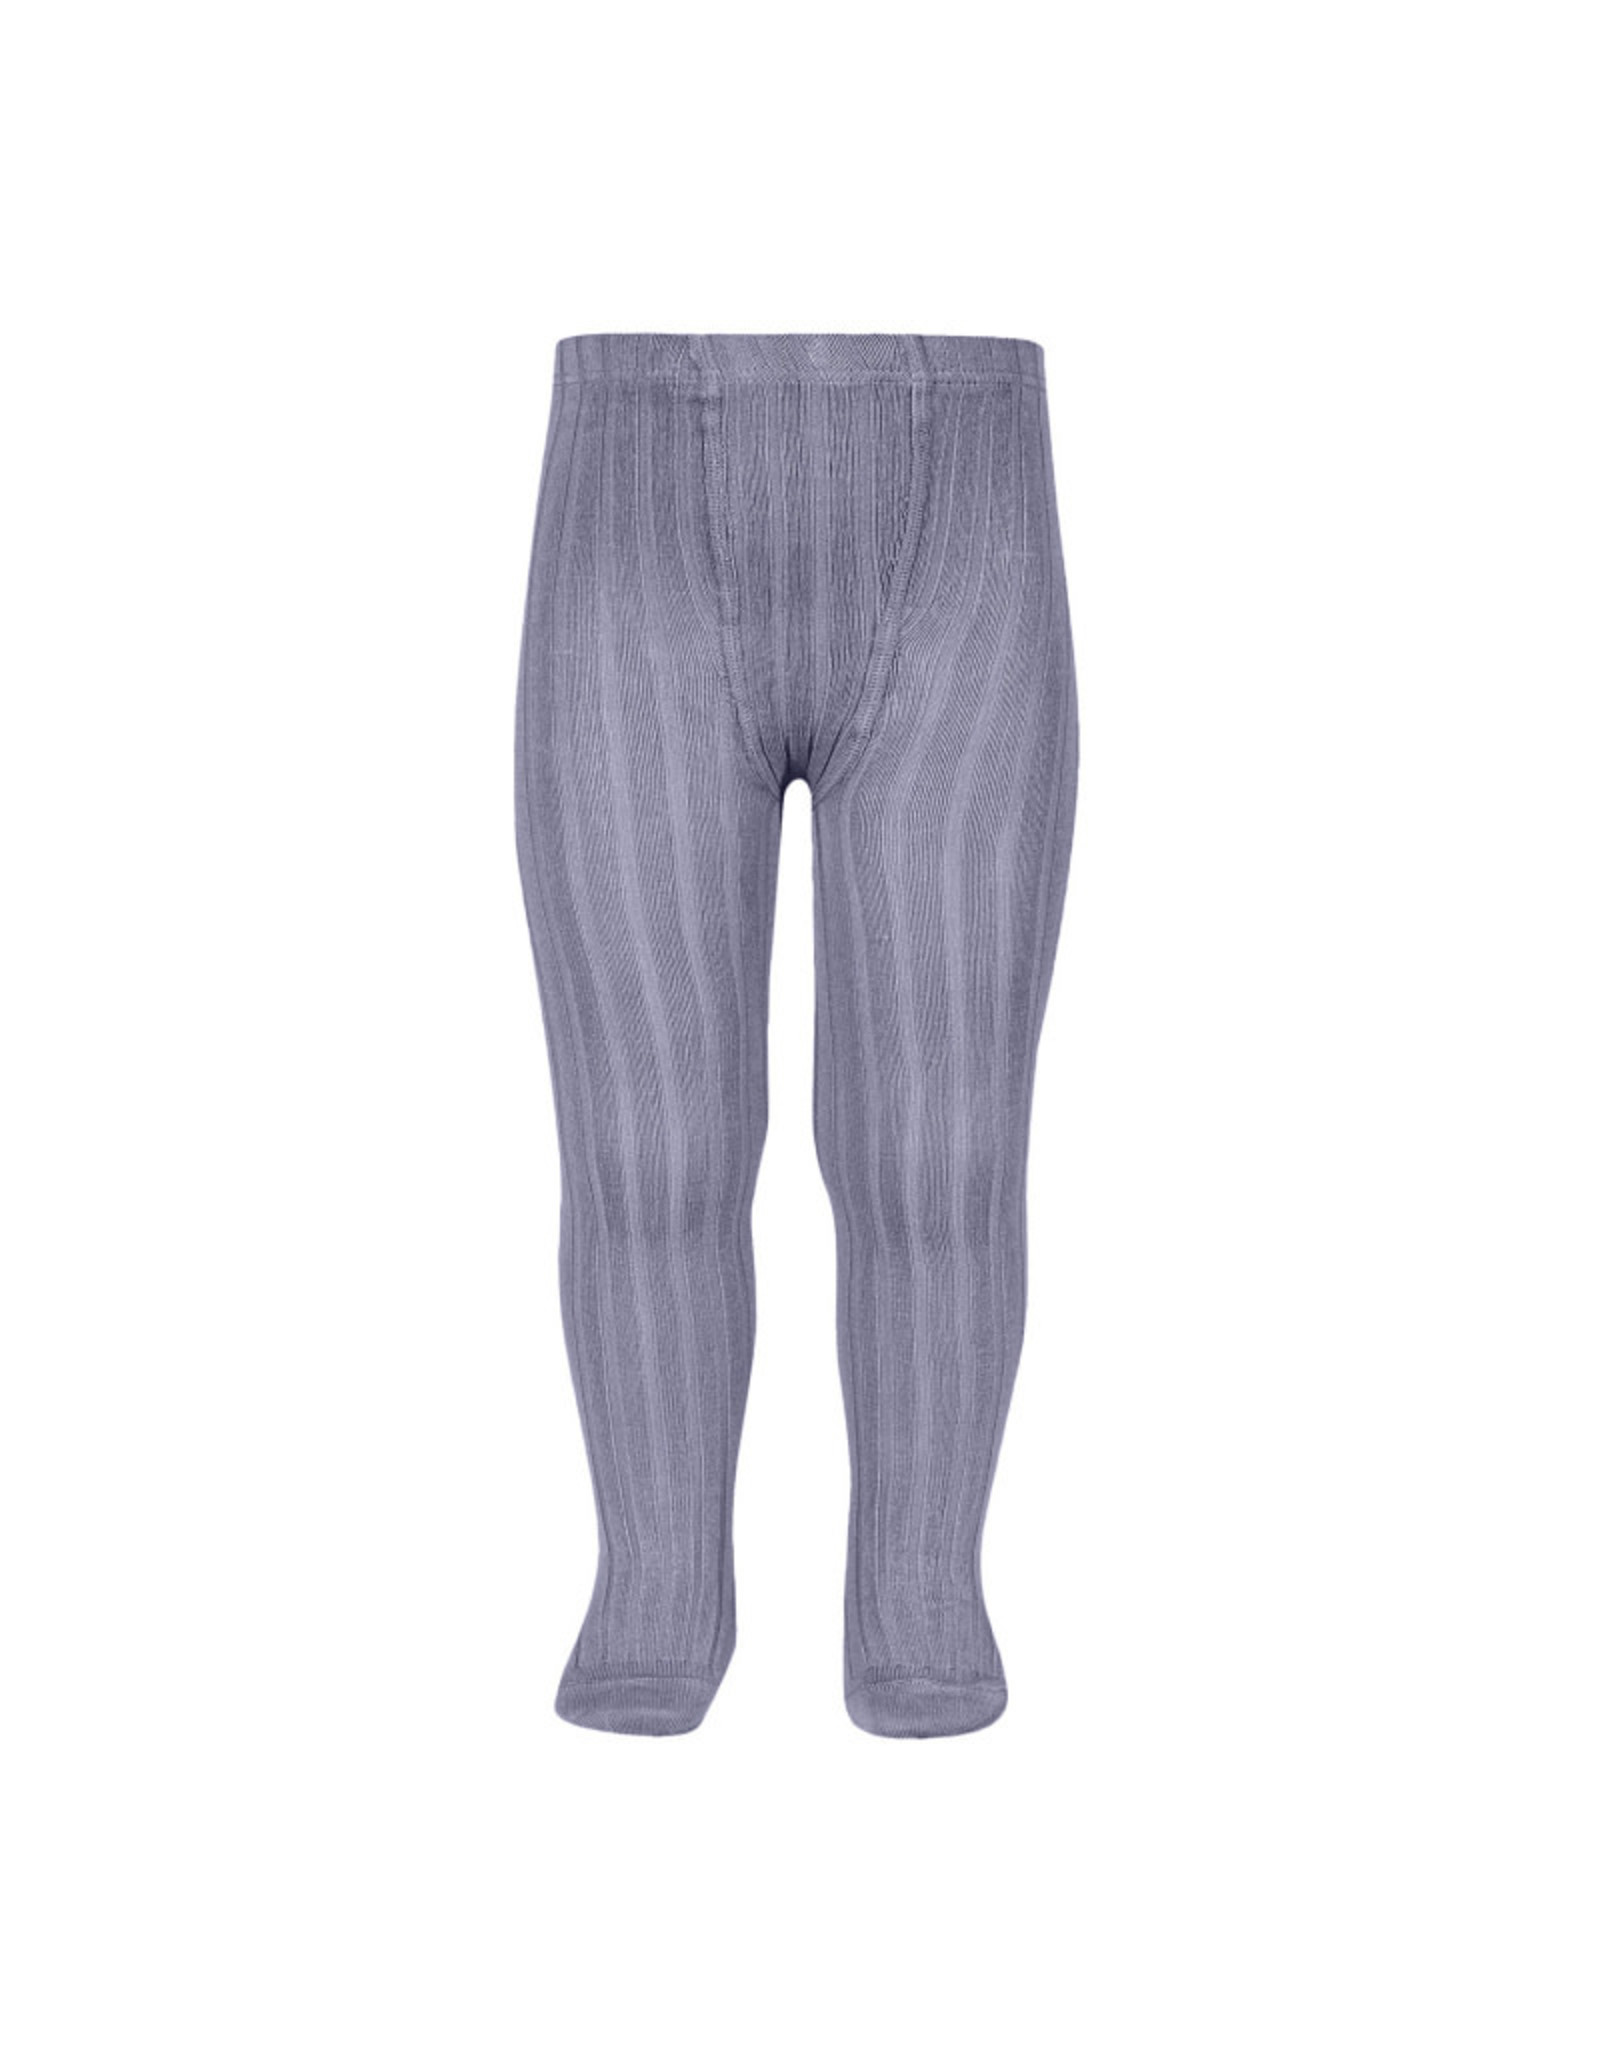 CONDOR Lavender Ribbed Tights